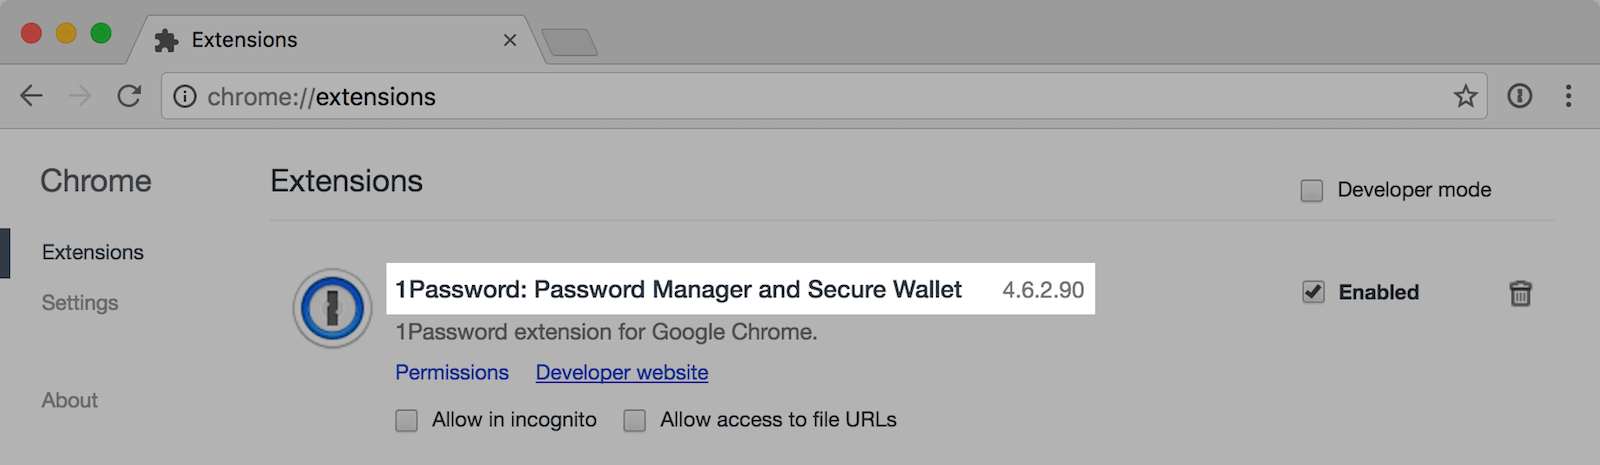 1Password extension version number in Chrome